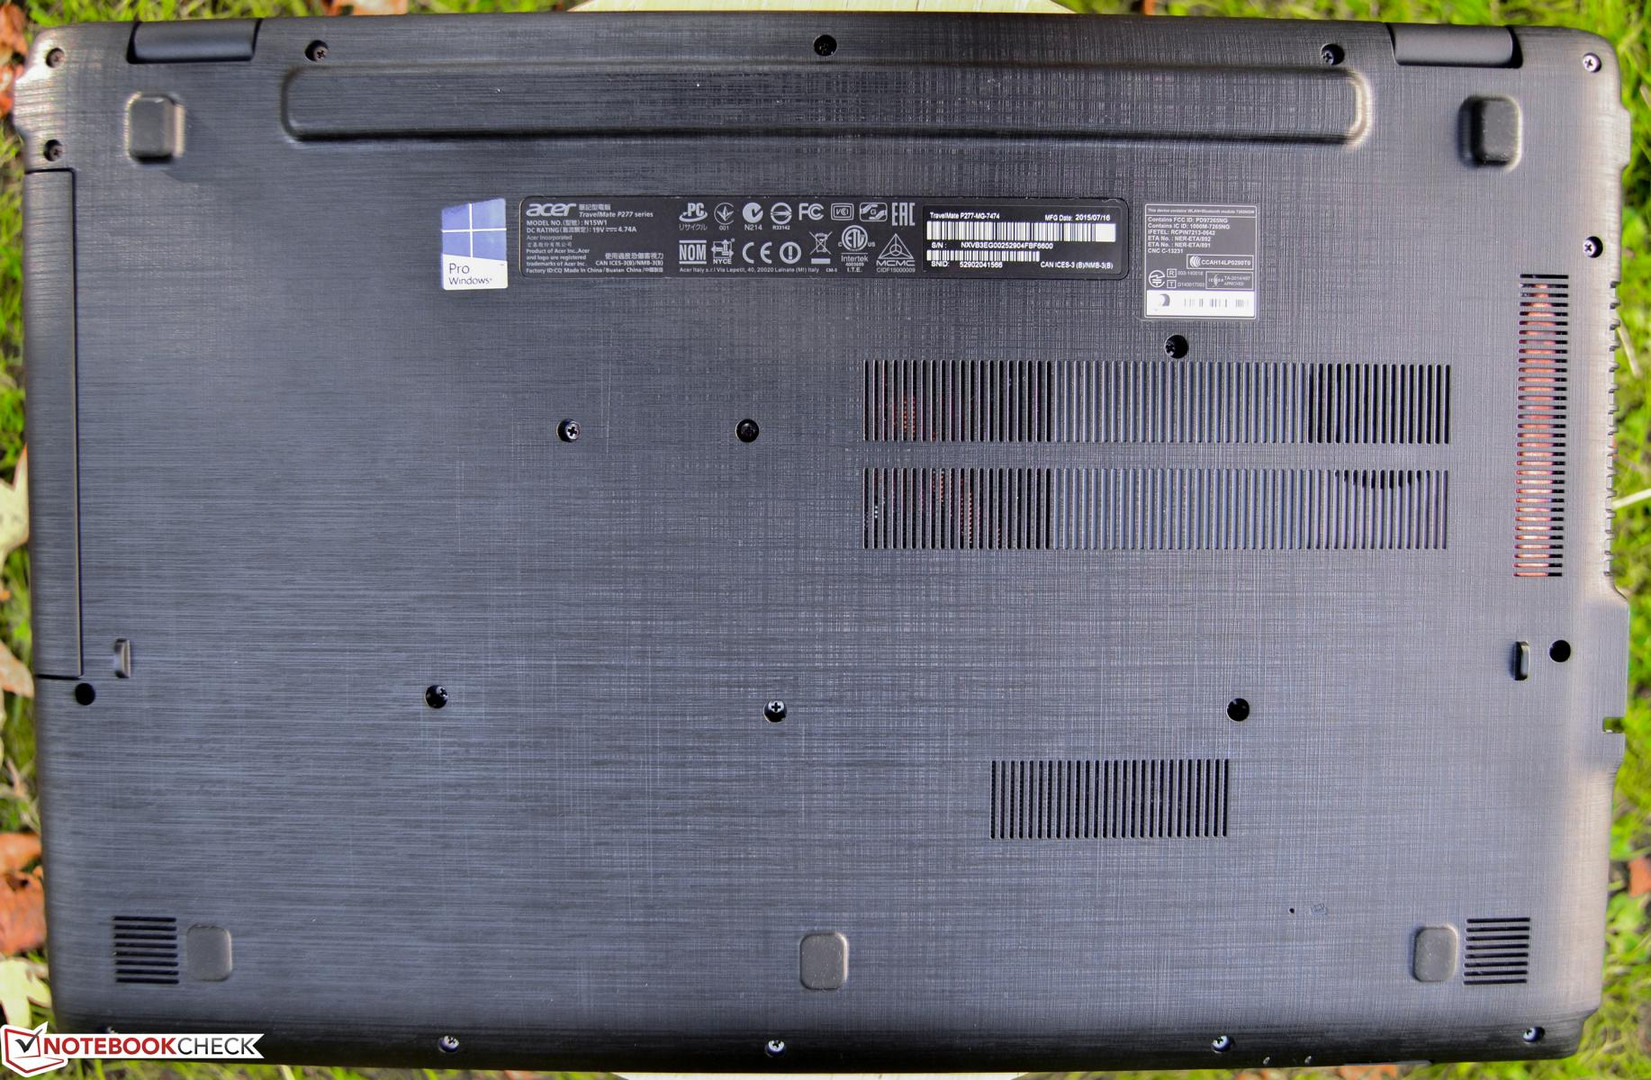 Acer Travelmate P277 Mg 7474 Notebook Review Reviews Original New Toshiba Integrated Circuit O 5200 1 Of See More Full Resolution